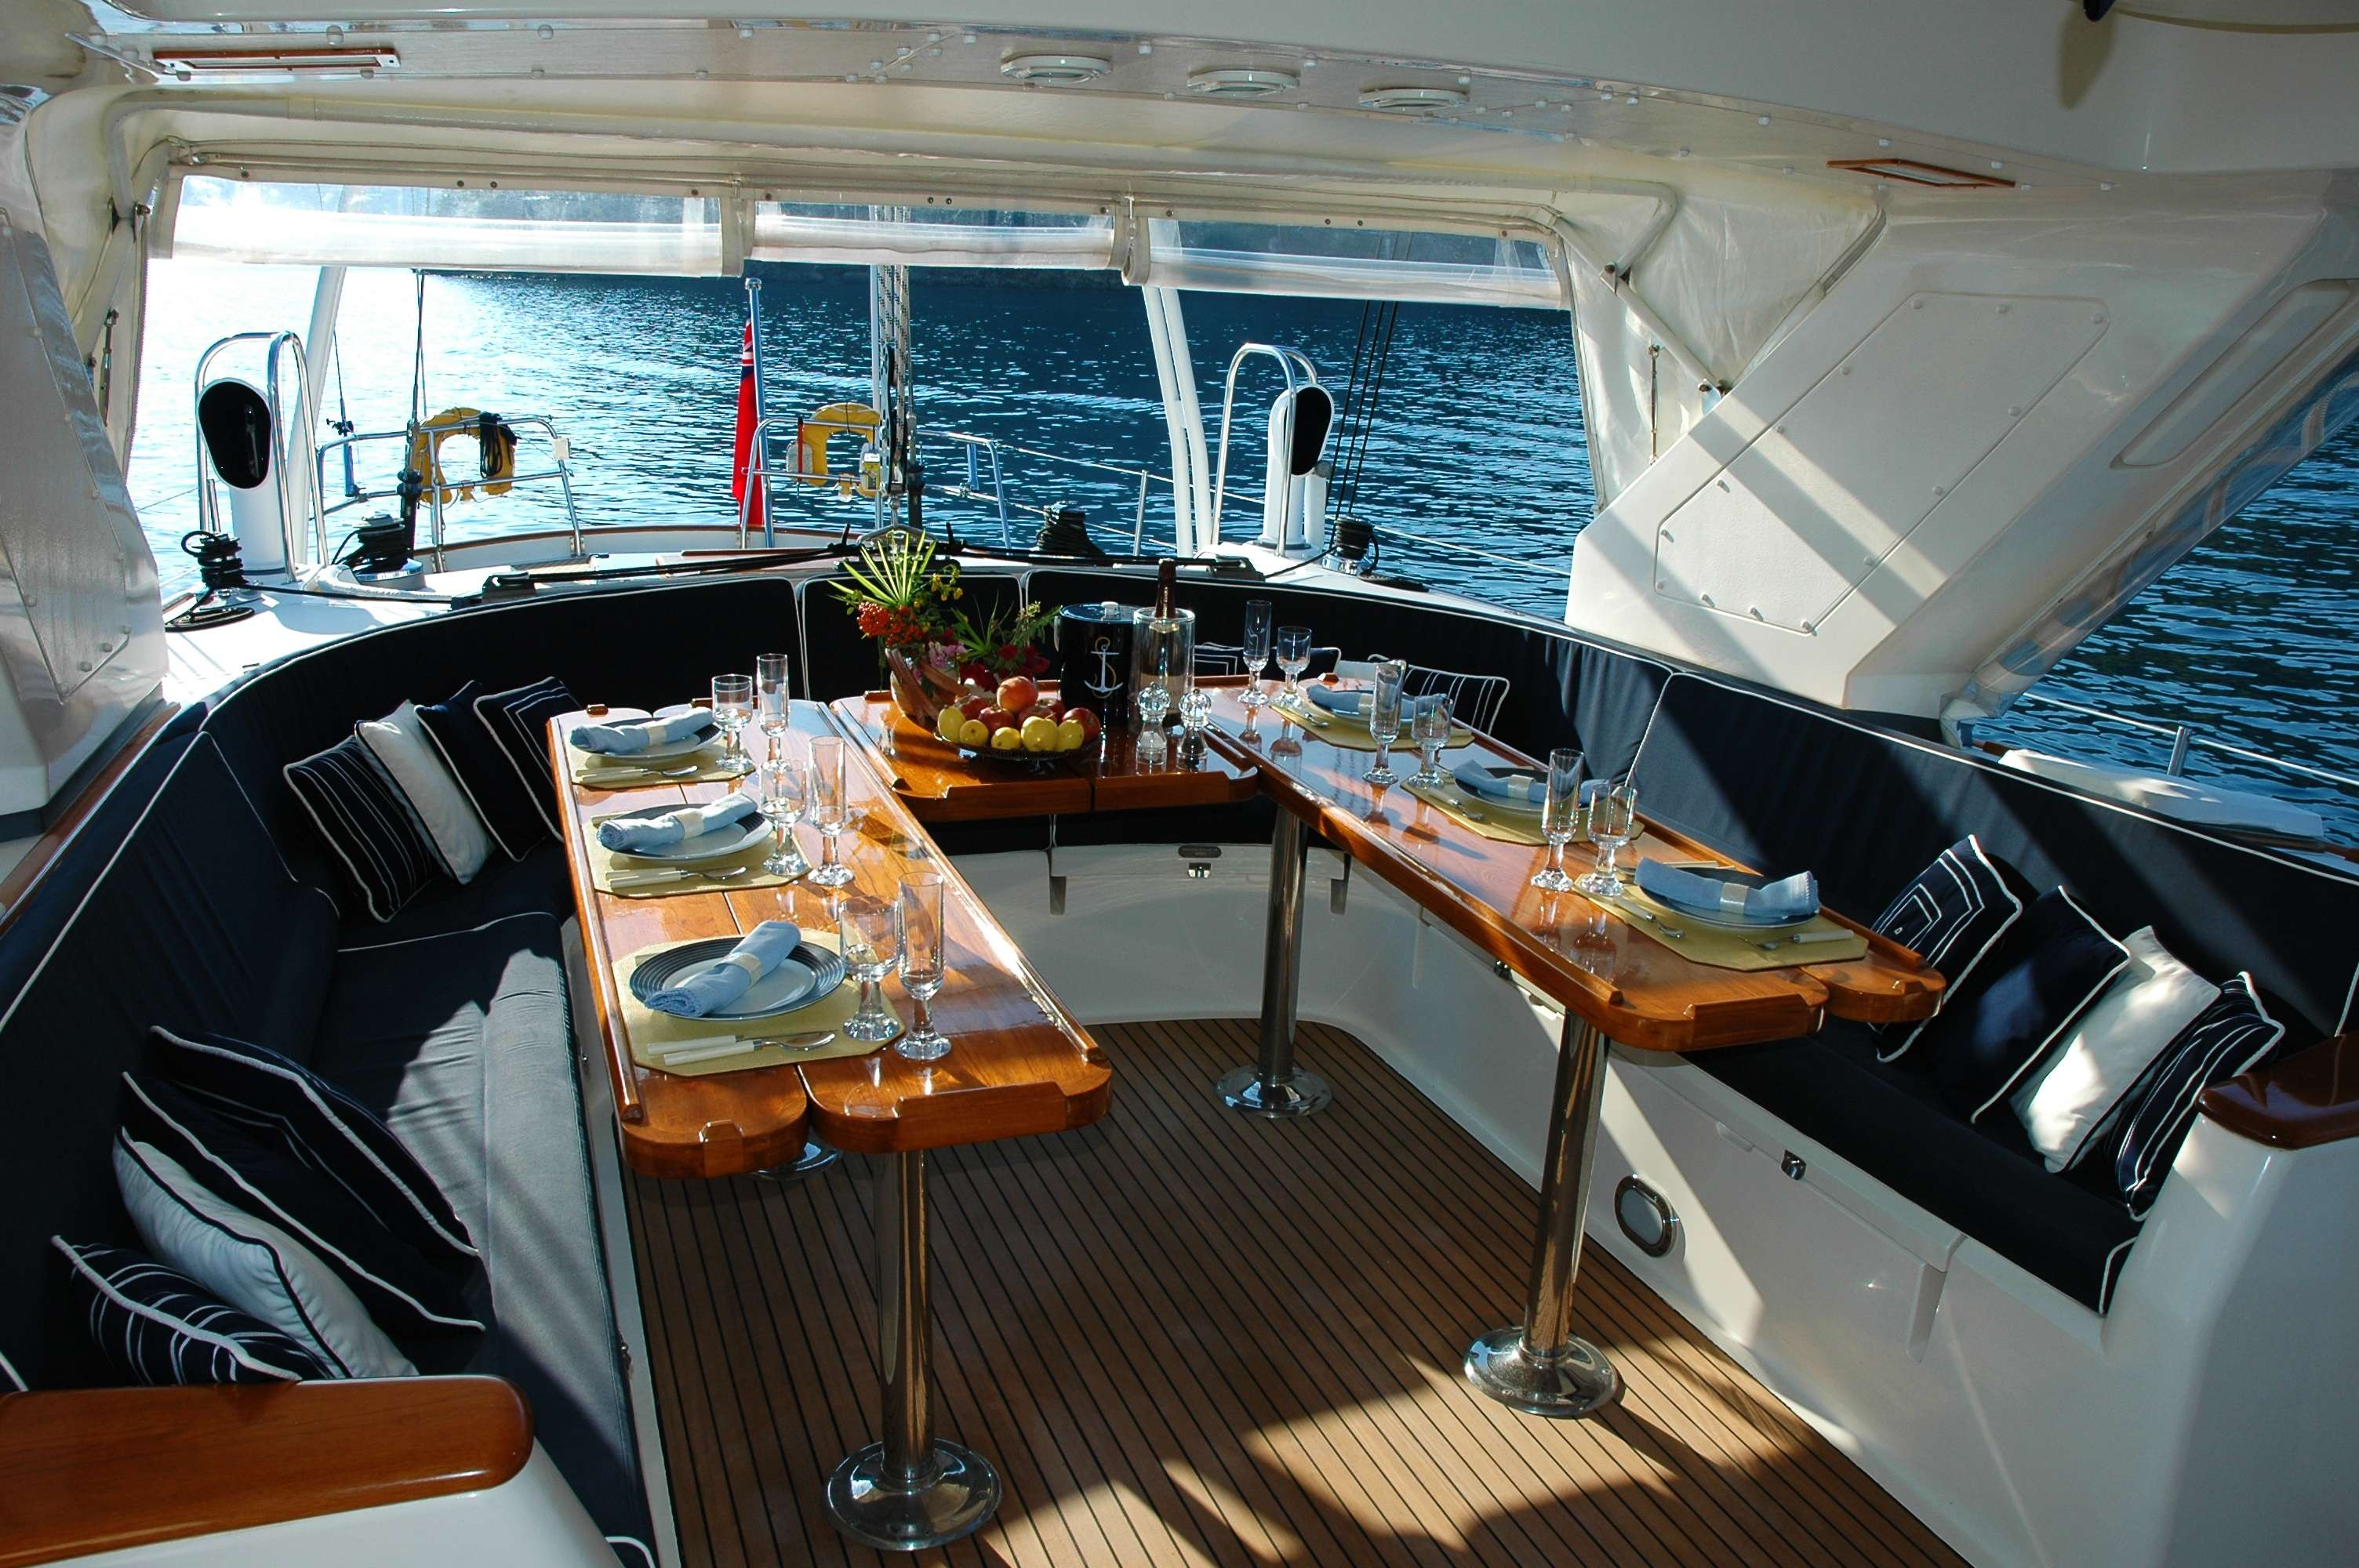 5 reasons to host a party on a boat